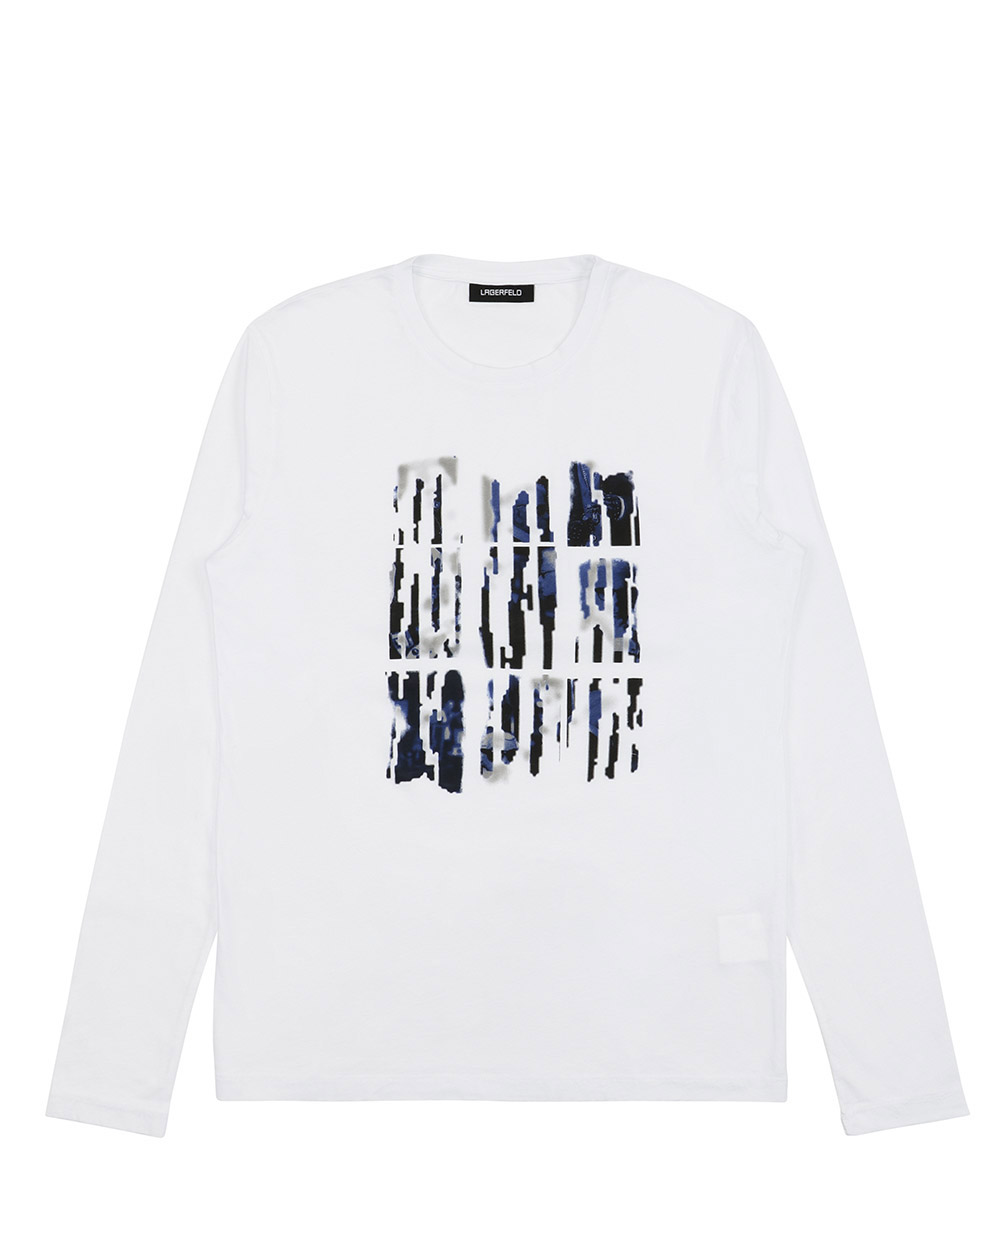 Printed Round Neck Long-Sleeves T-shirt